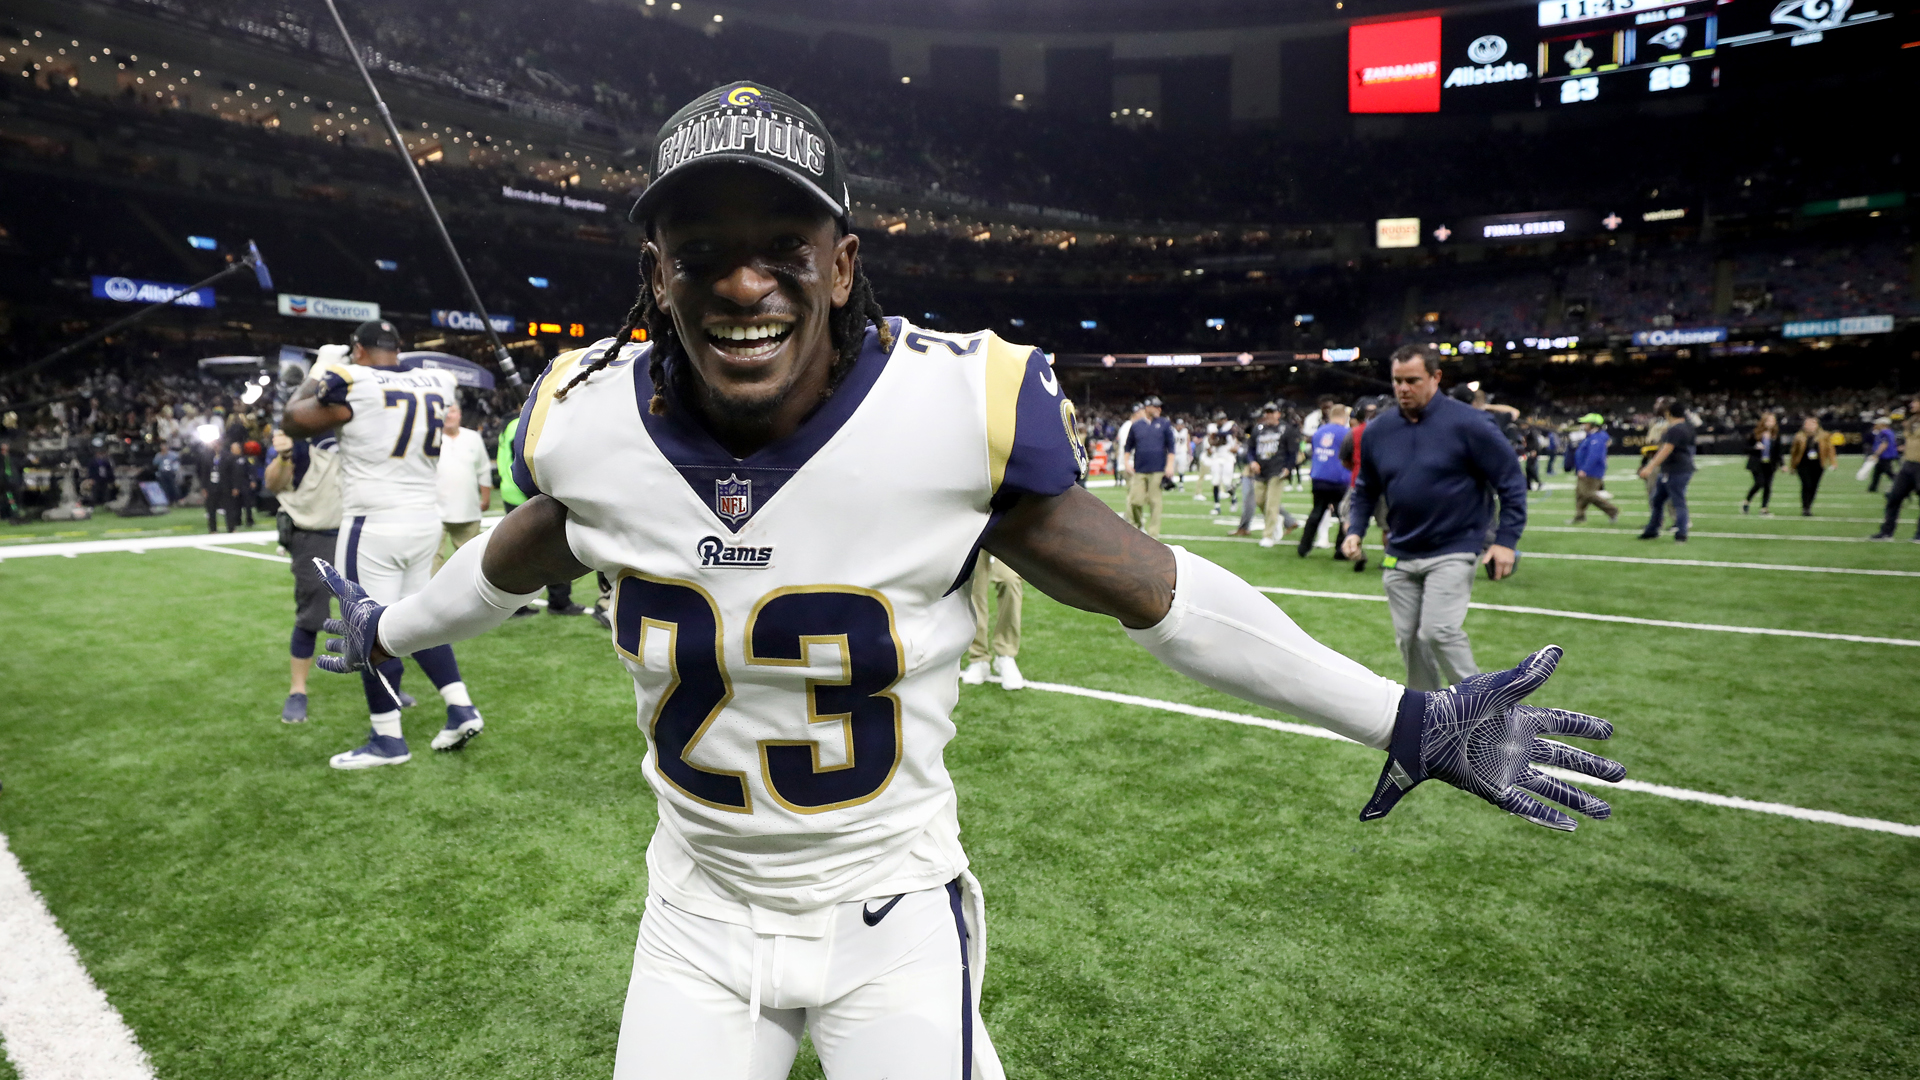 Nickell Robey-Coleman #23 of the Los Angeles Rams celebrates after defeating the New Orleans Saints in the NFC Championship game at the Mercedes-Benz Superdome on January 20, 2019 in New Orleans, Louisiana. (Credit: Streeter Lecka/Getty Images)